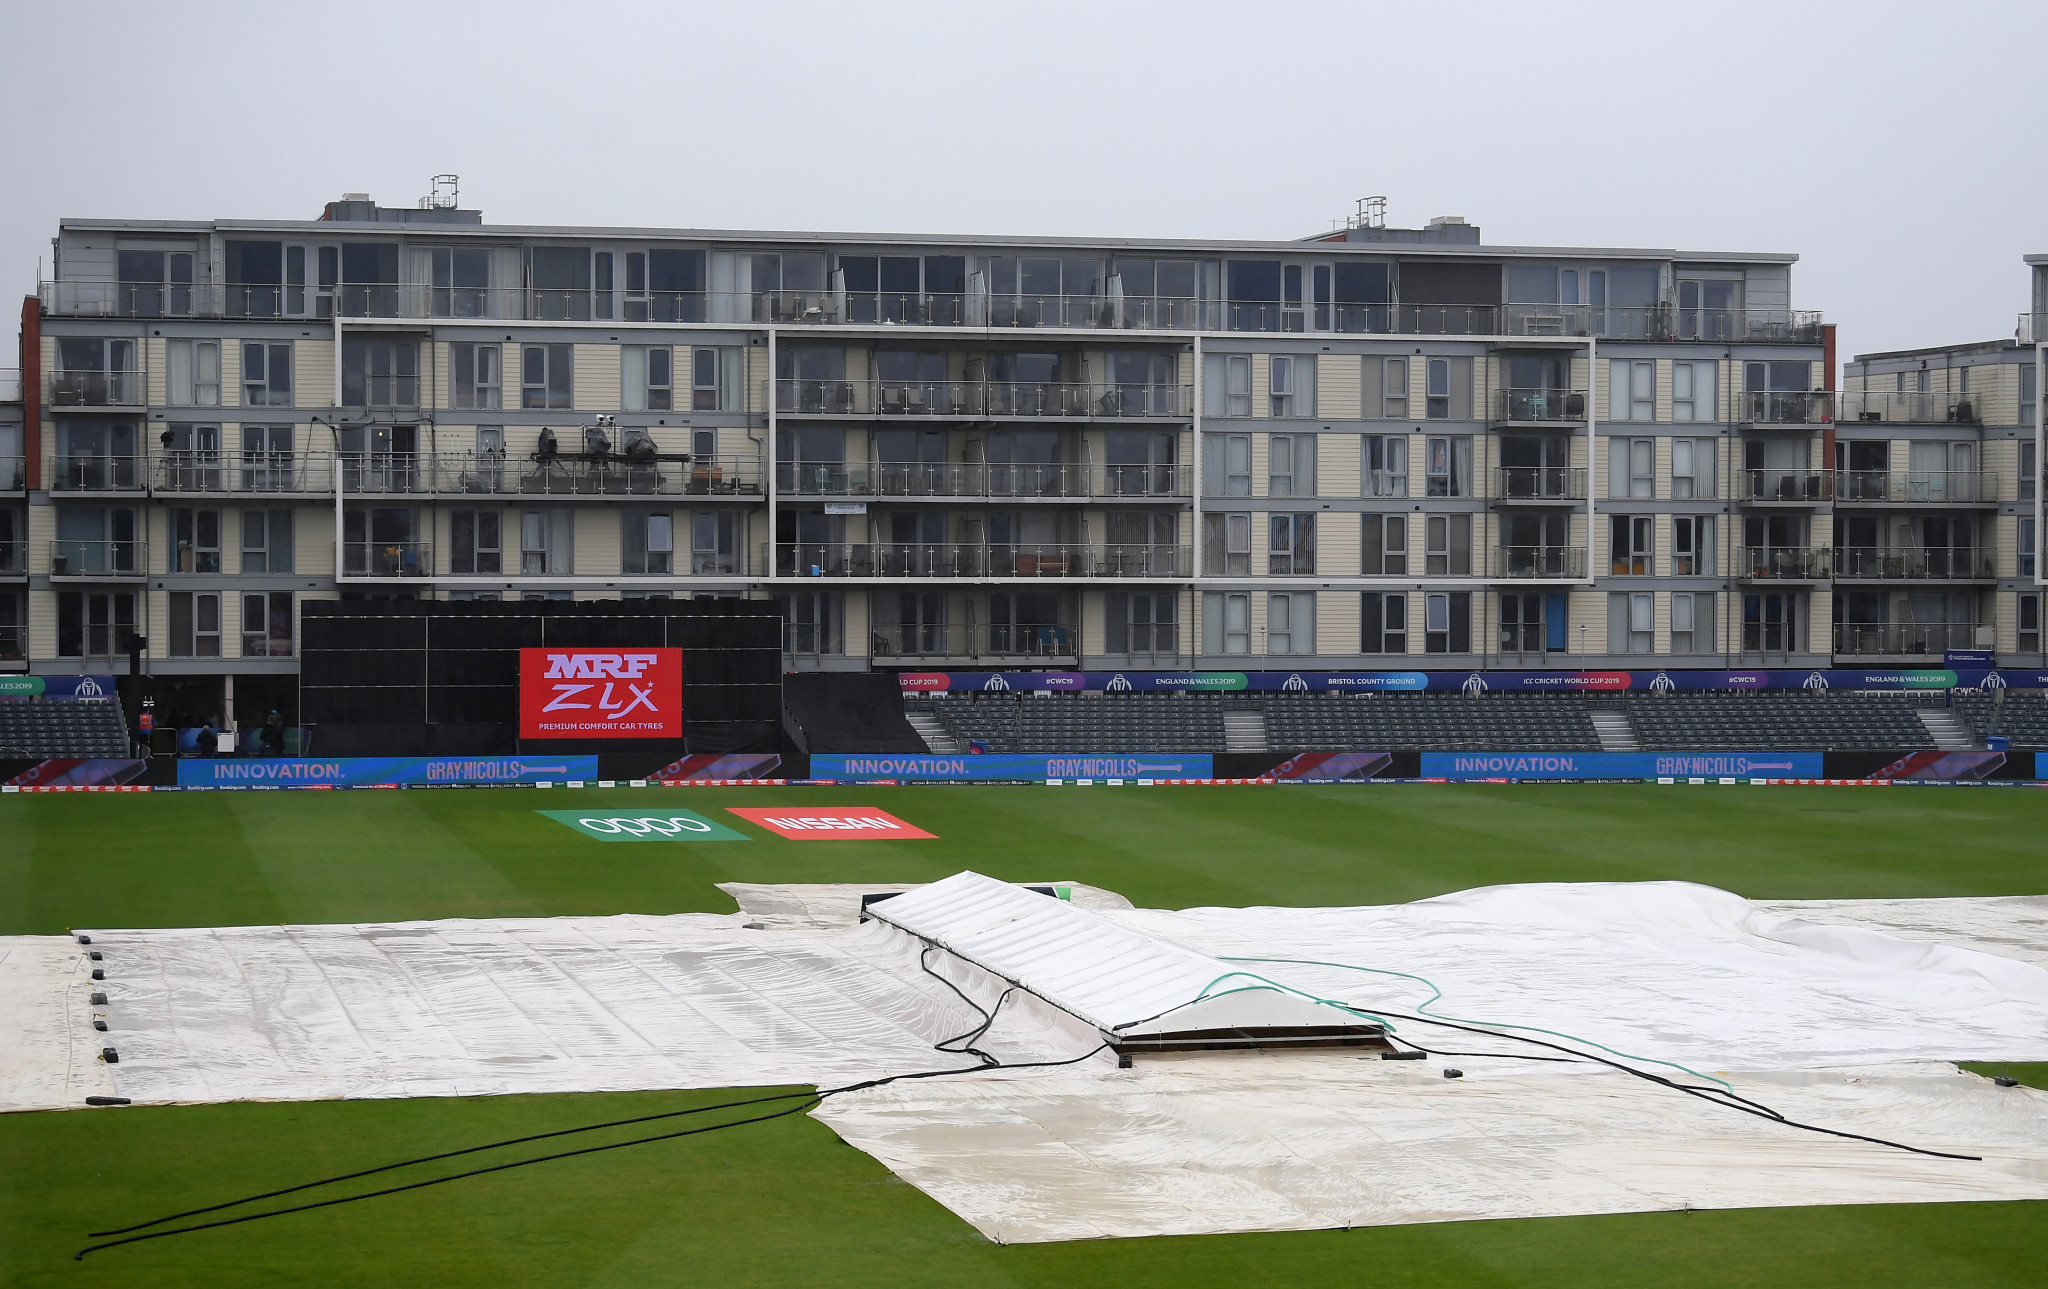 Bangladesh's match with Sri Lanka was abandoned without a ball being bowled ©Getty Images